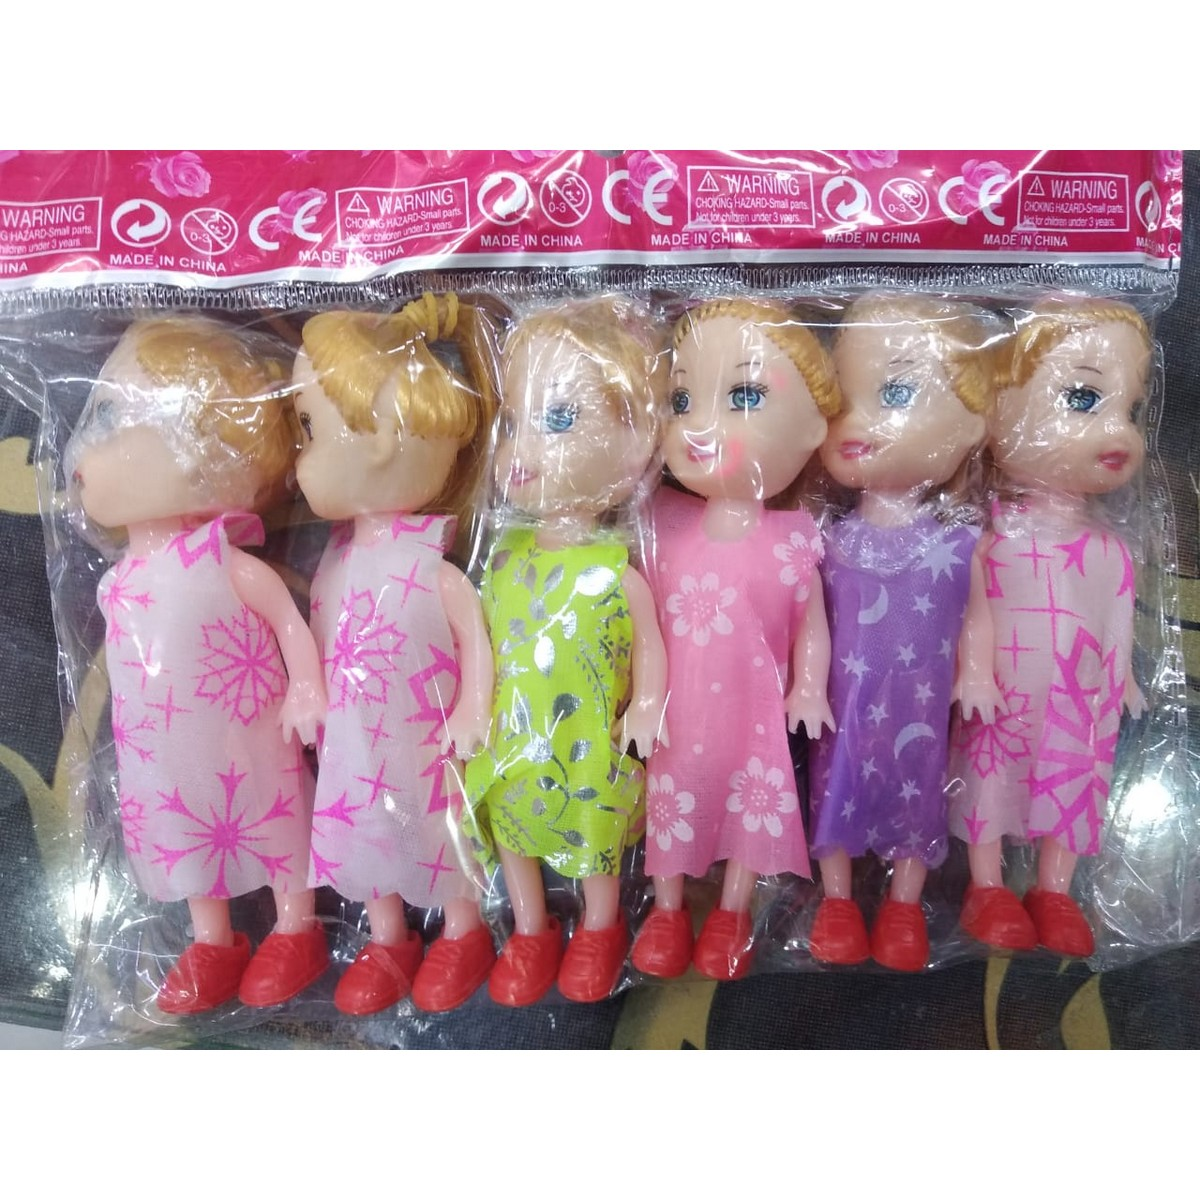 6 Pieces Dolls Toys Kids Gift Set For Girls (Multicolours)